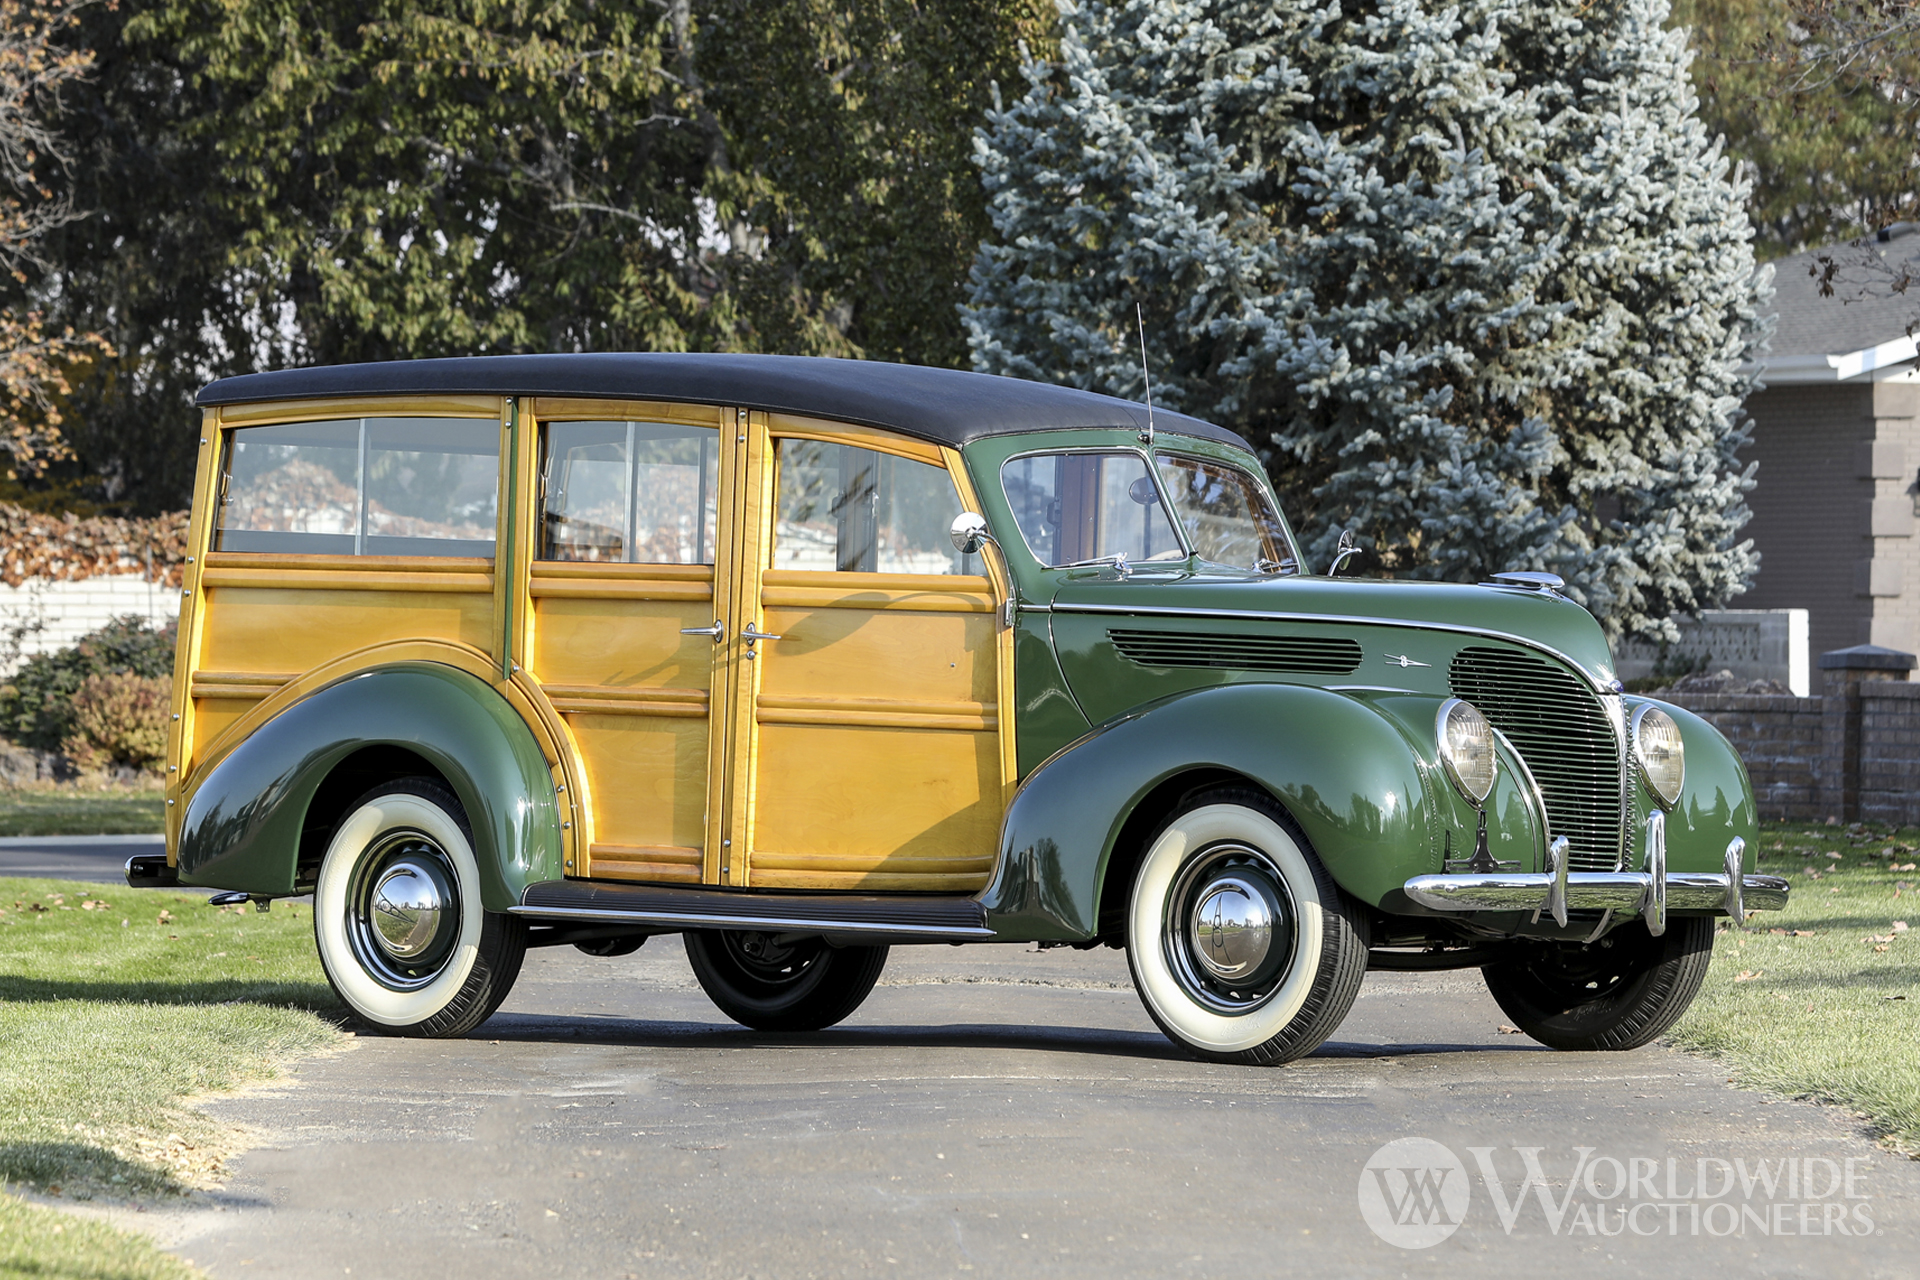 1938 Ford Model 81 DeLuxe Station Wagon